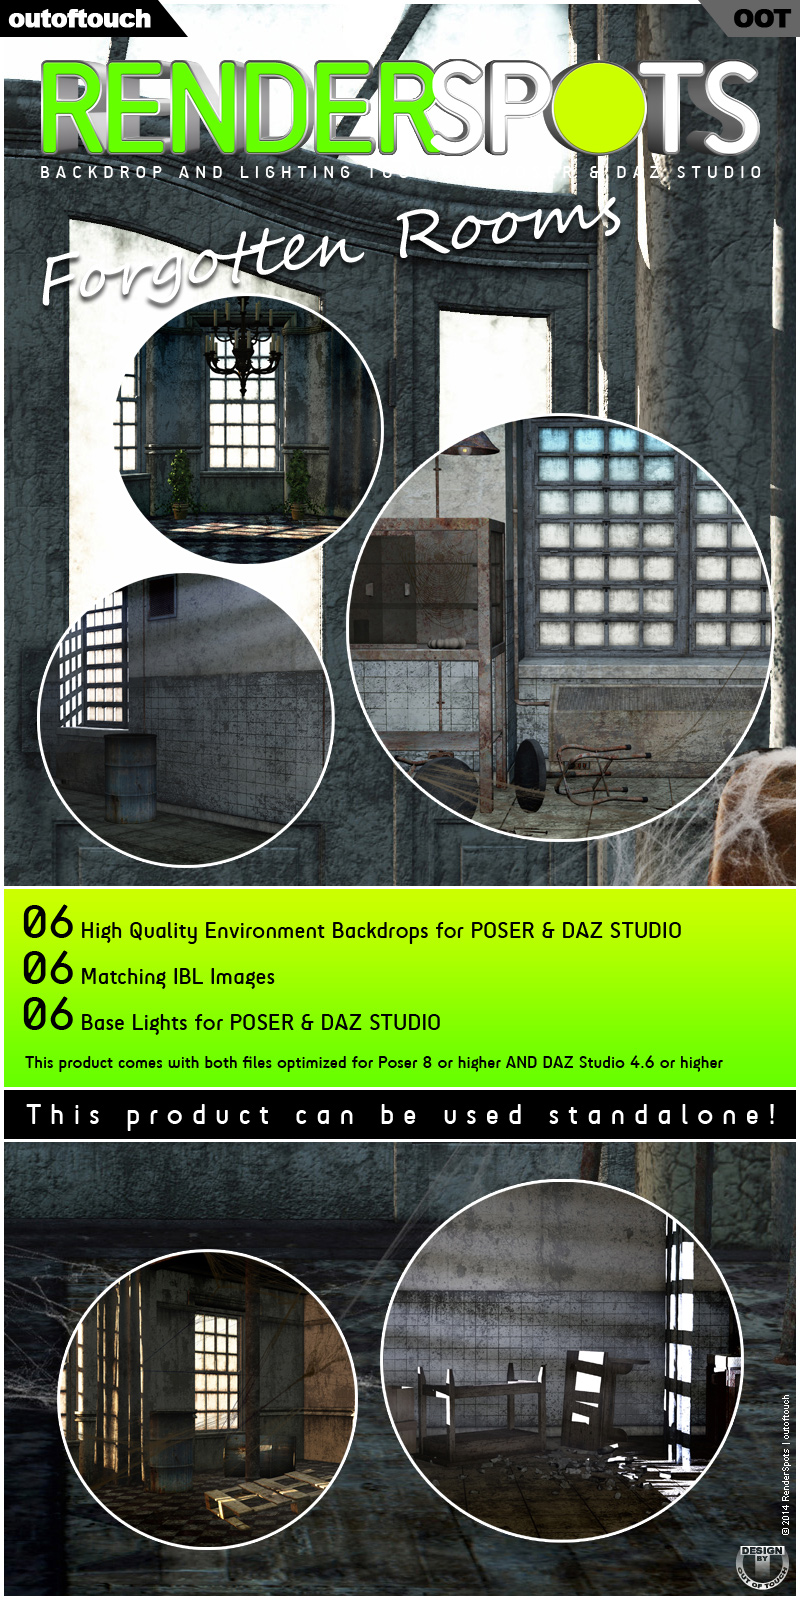 RenderSpots Forgotten Rooms for Poser and DAZ Studio by outoftouch